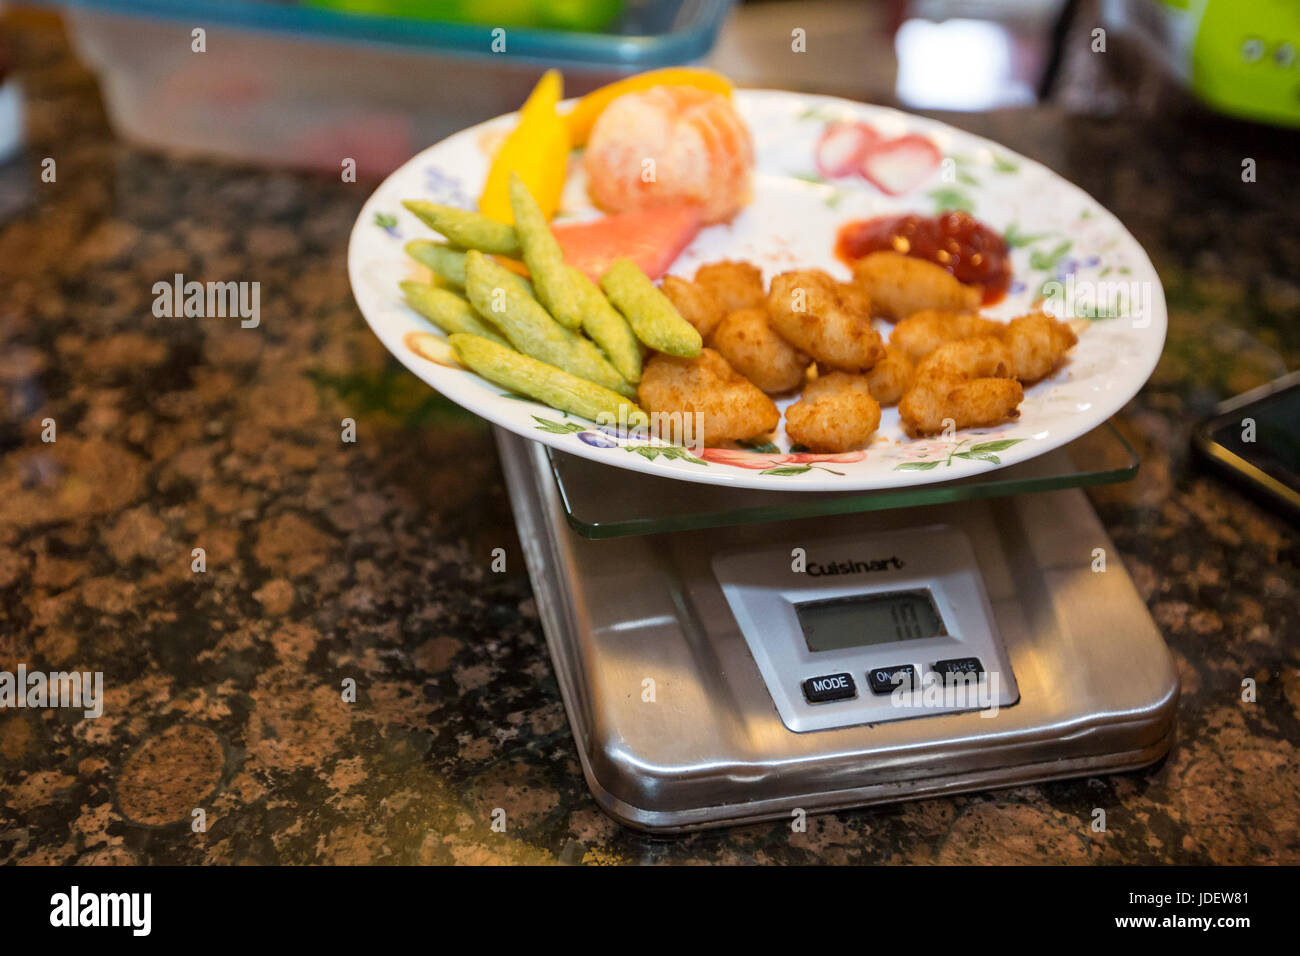 A meal is weighed for a six-year-old boy with type 1 diabetes, also called juvenile diabetes. His diet must be carefully - Stock Image